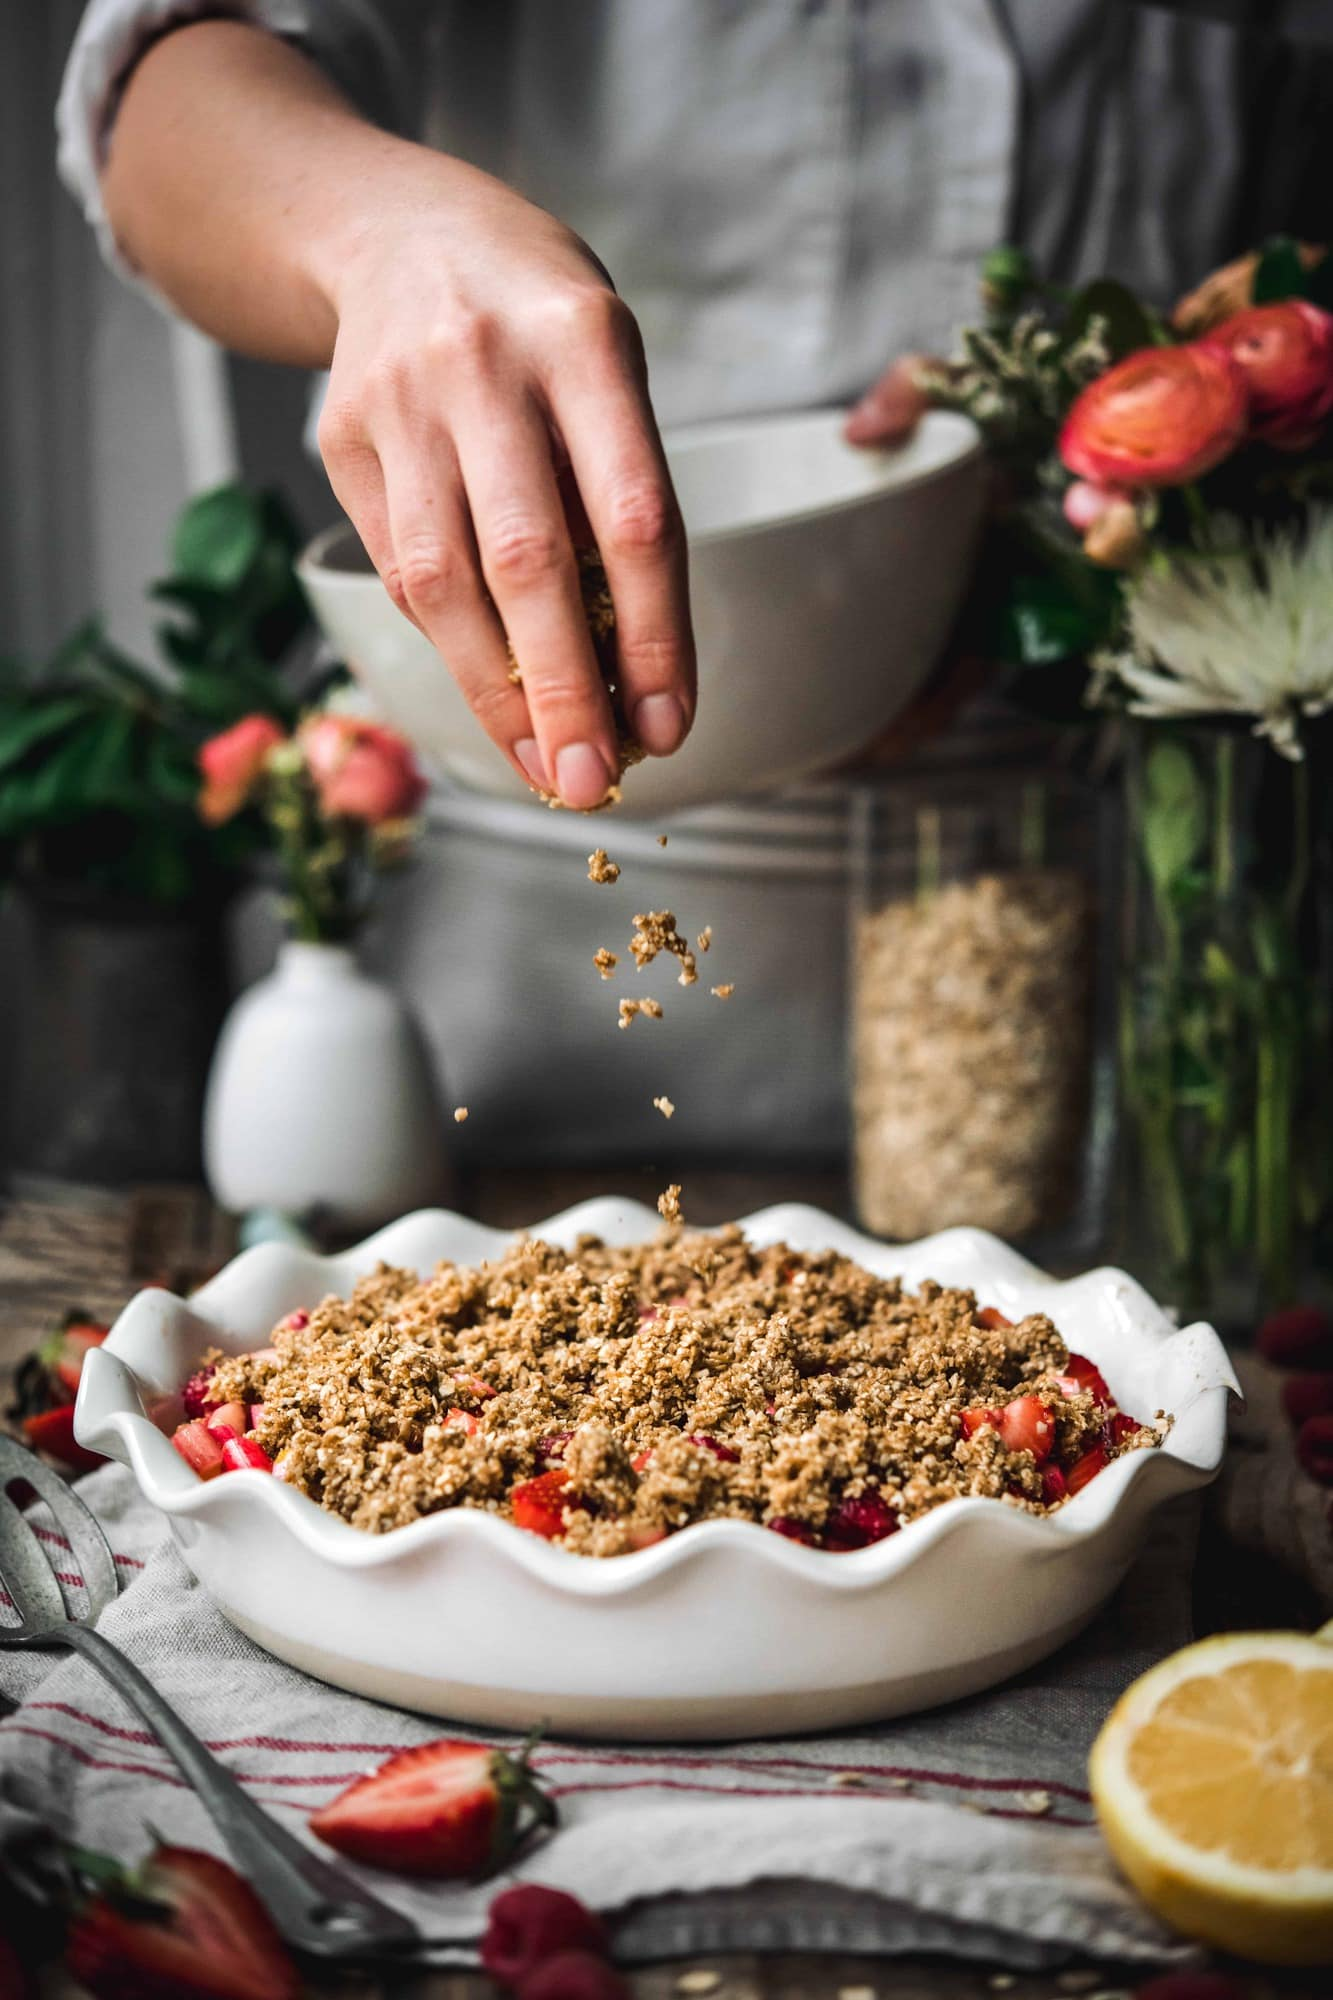 Person sprinkling crumble topping on top of strawberry rhubarb crisp with flowers in background